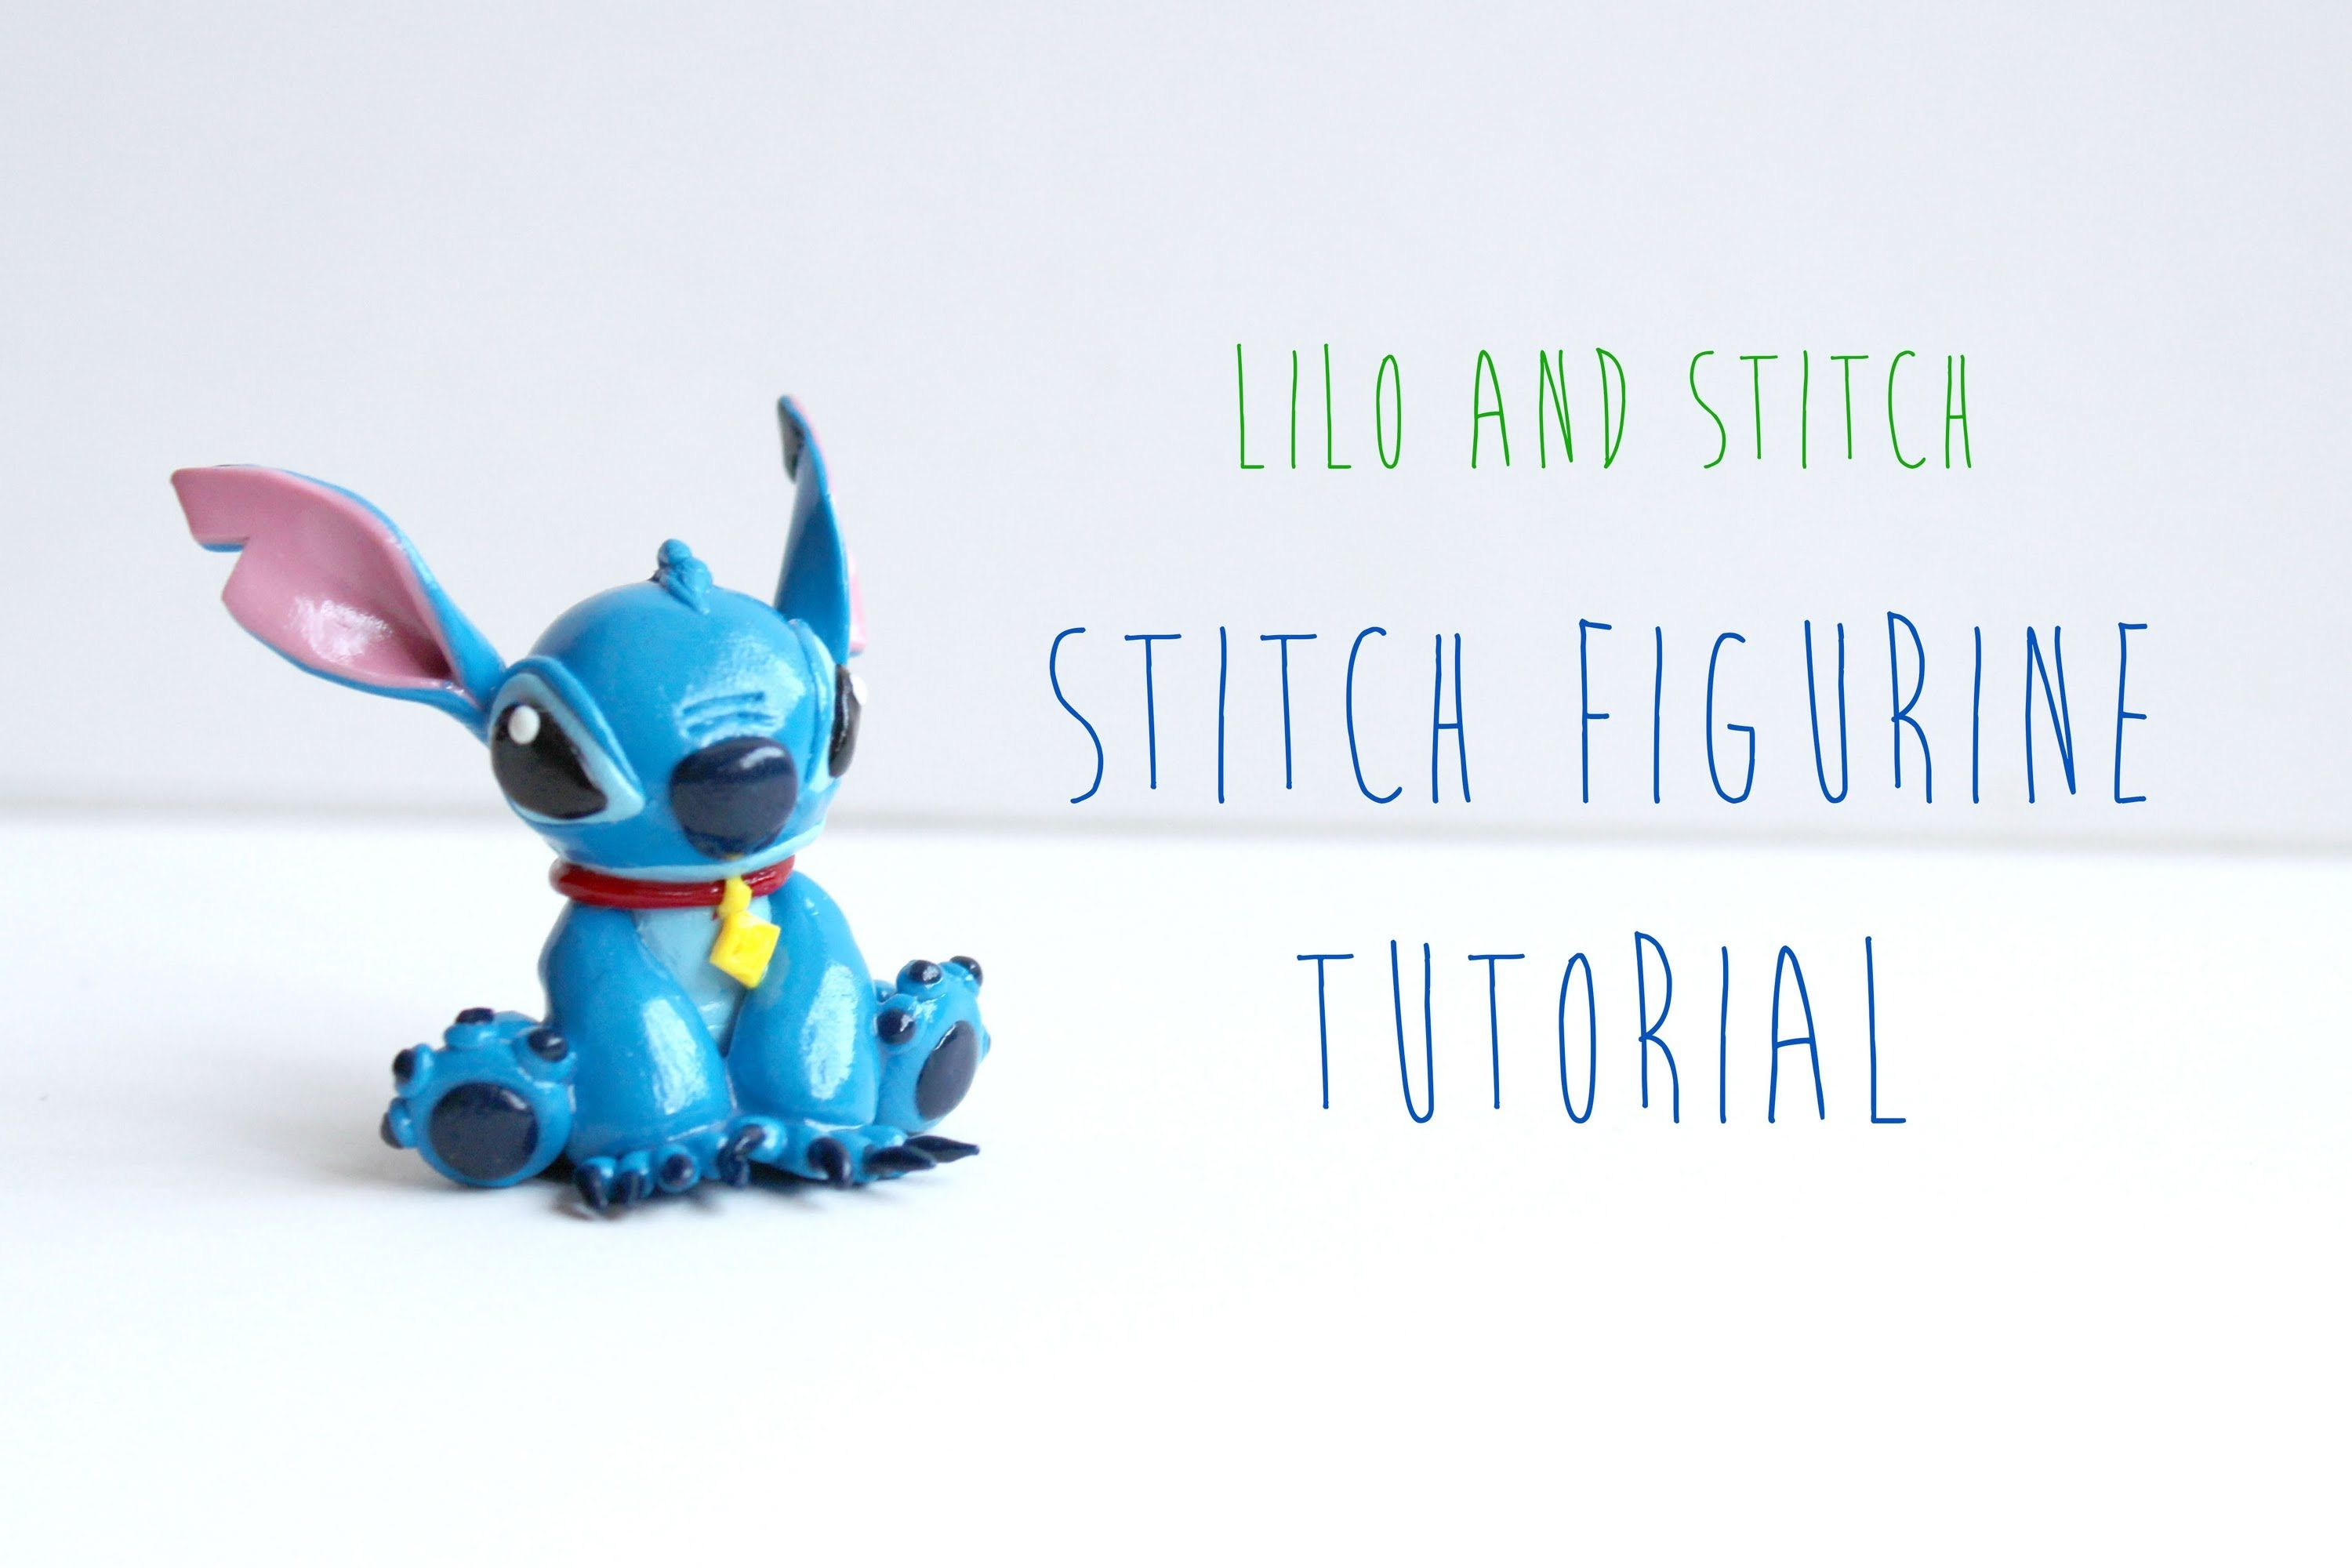 Stitch Polymer Clay Figurine Tutorial (Lilo and Stitch Film)